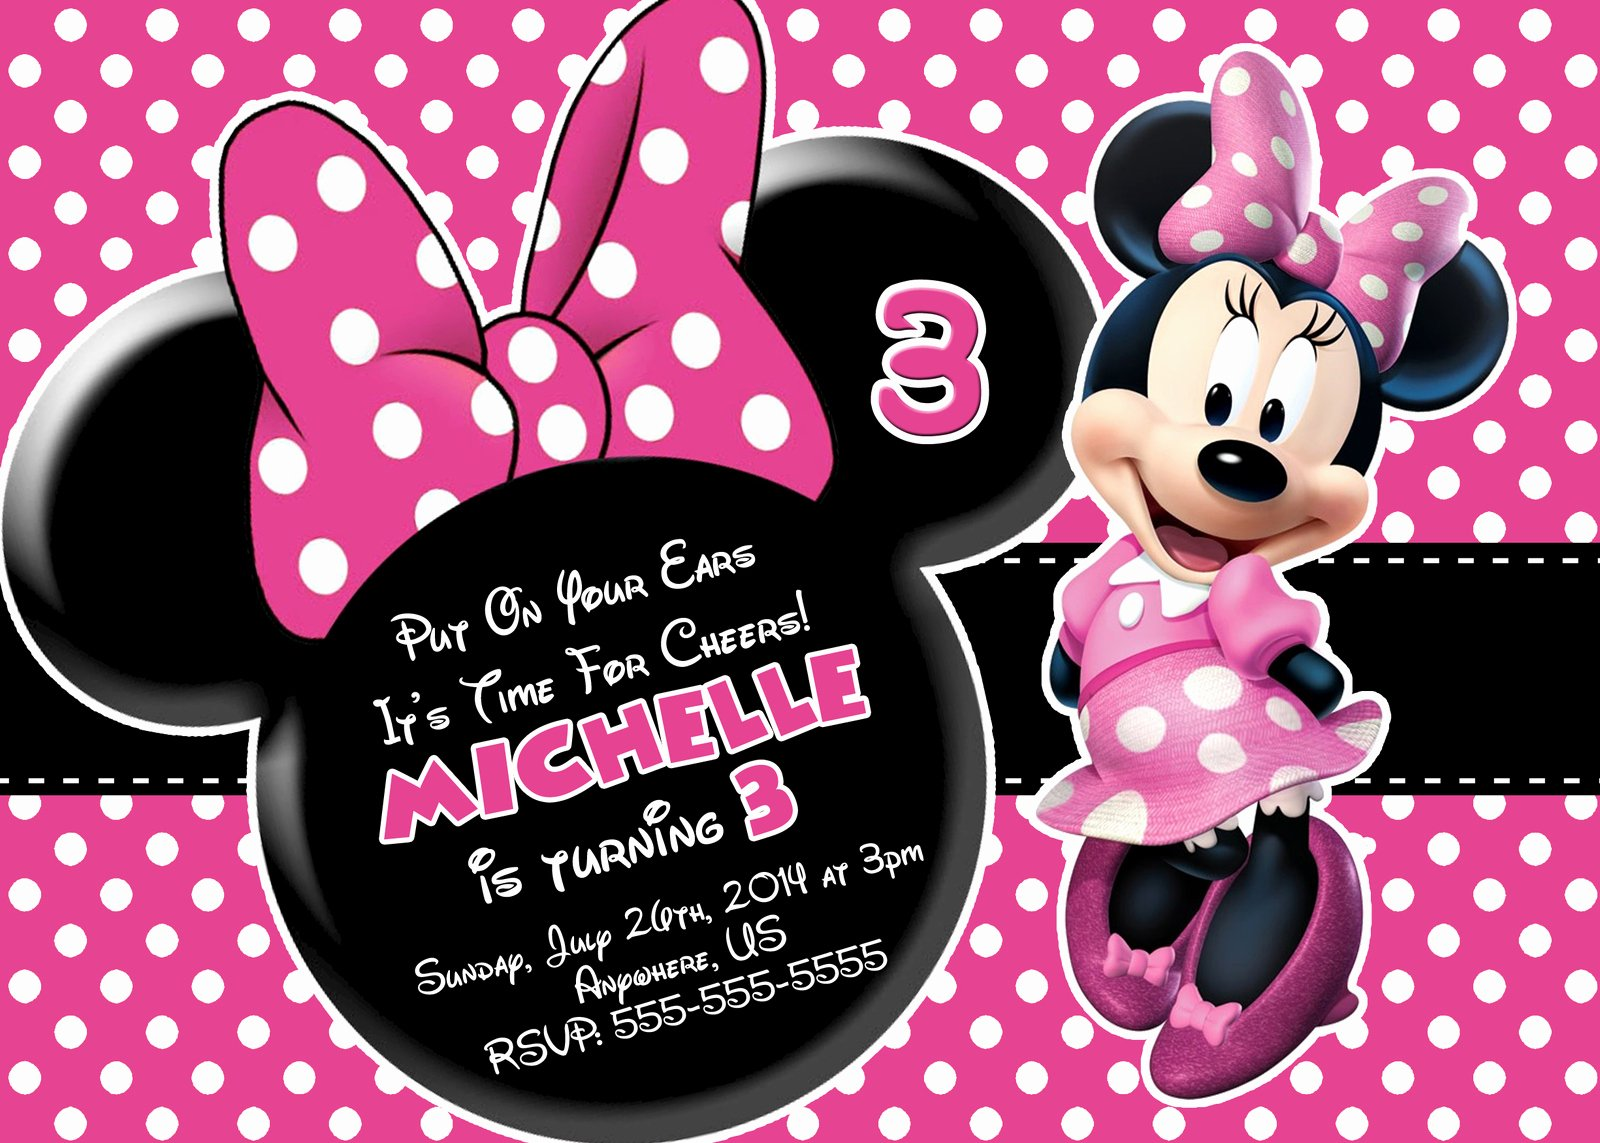 Minnie Mouse Red Invitations Luxury Free Minnie Mouse Printable Birthday Invitations